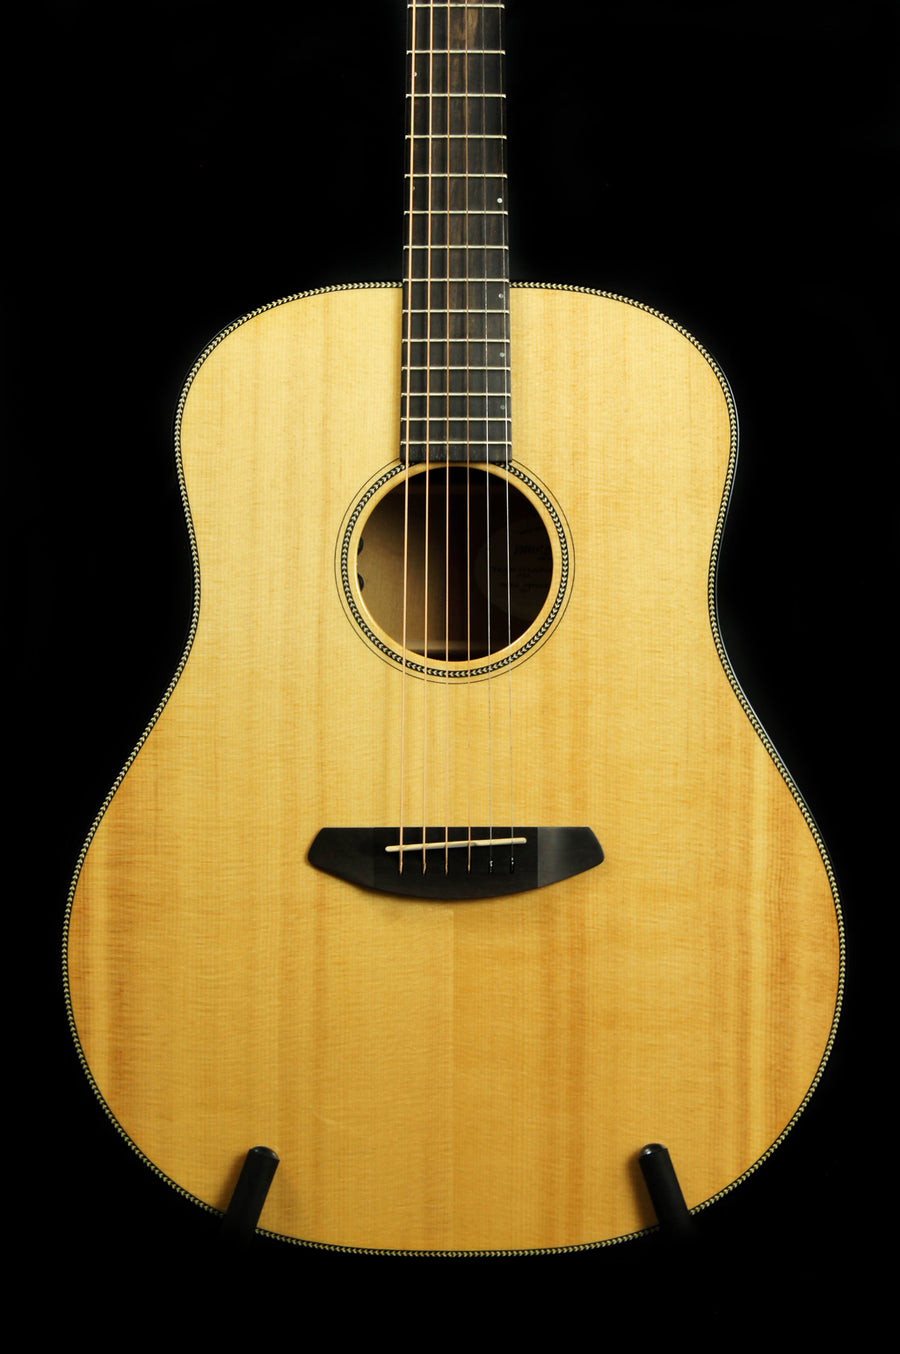 Breedlove Oregon Dreadnought Sitka Spruce/Myrtlewood Acoustic Electric Guitar - Includes Case -FINAL SALE-